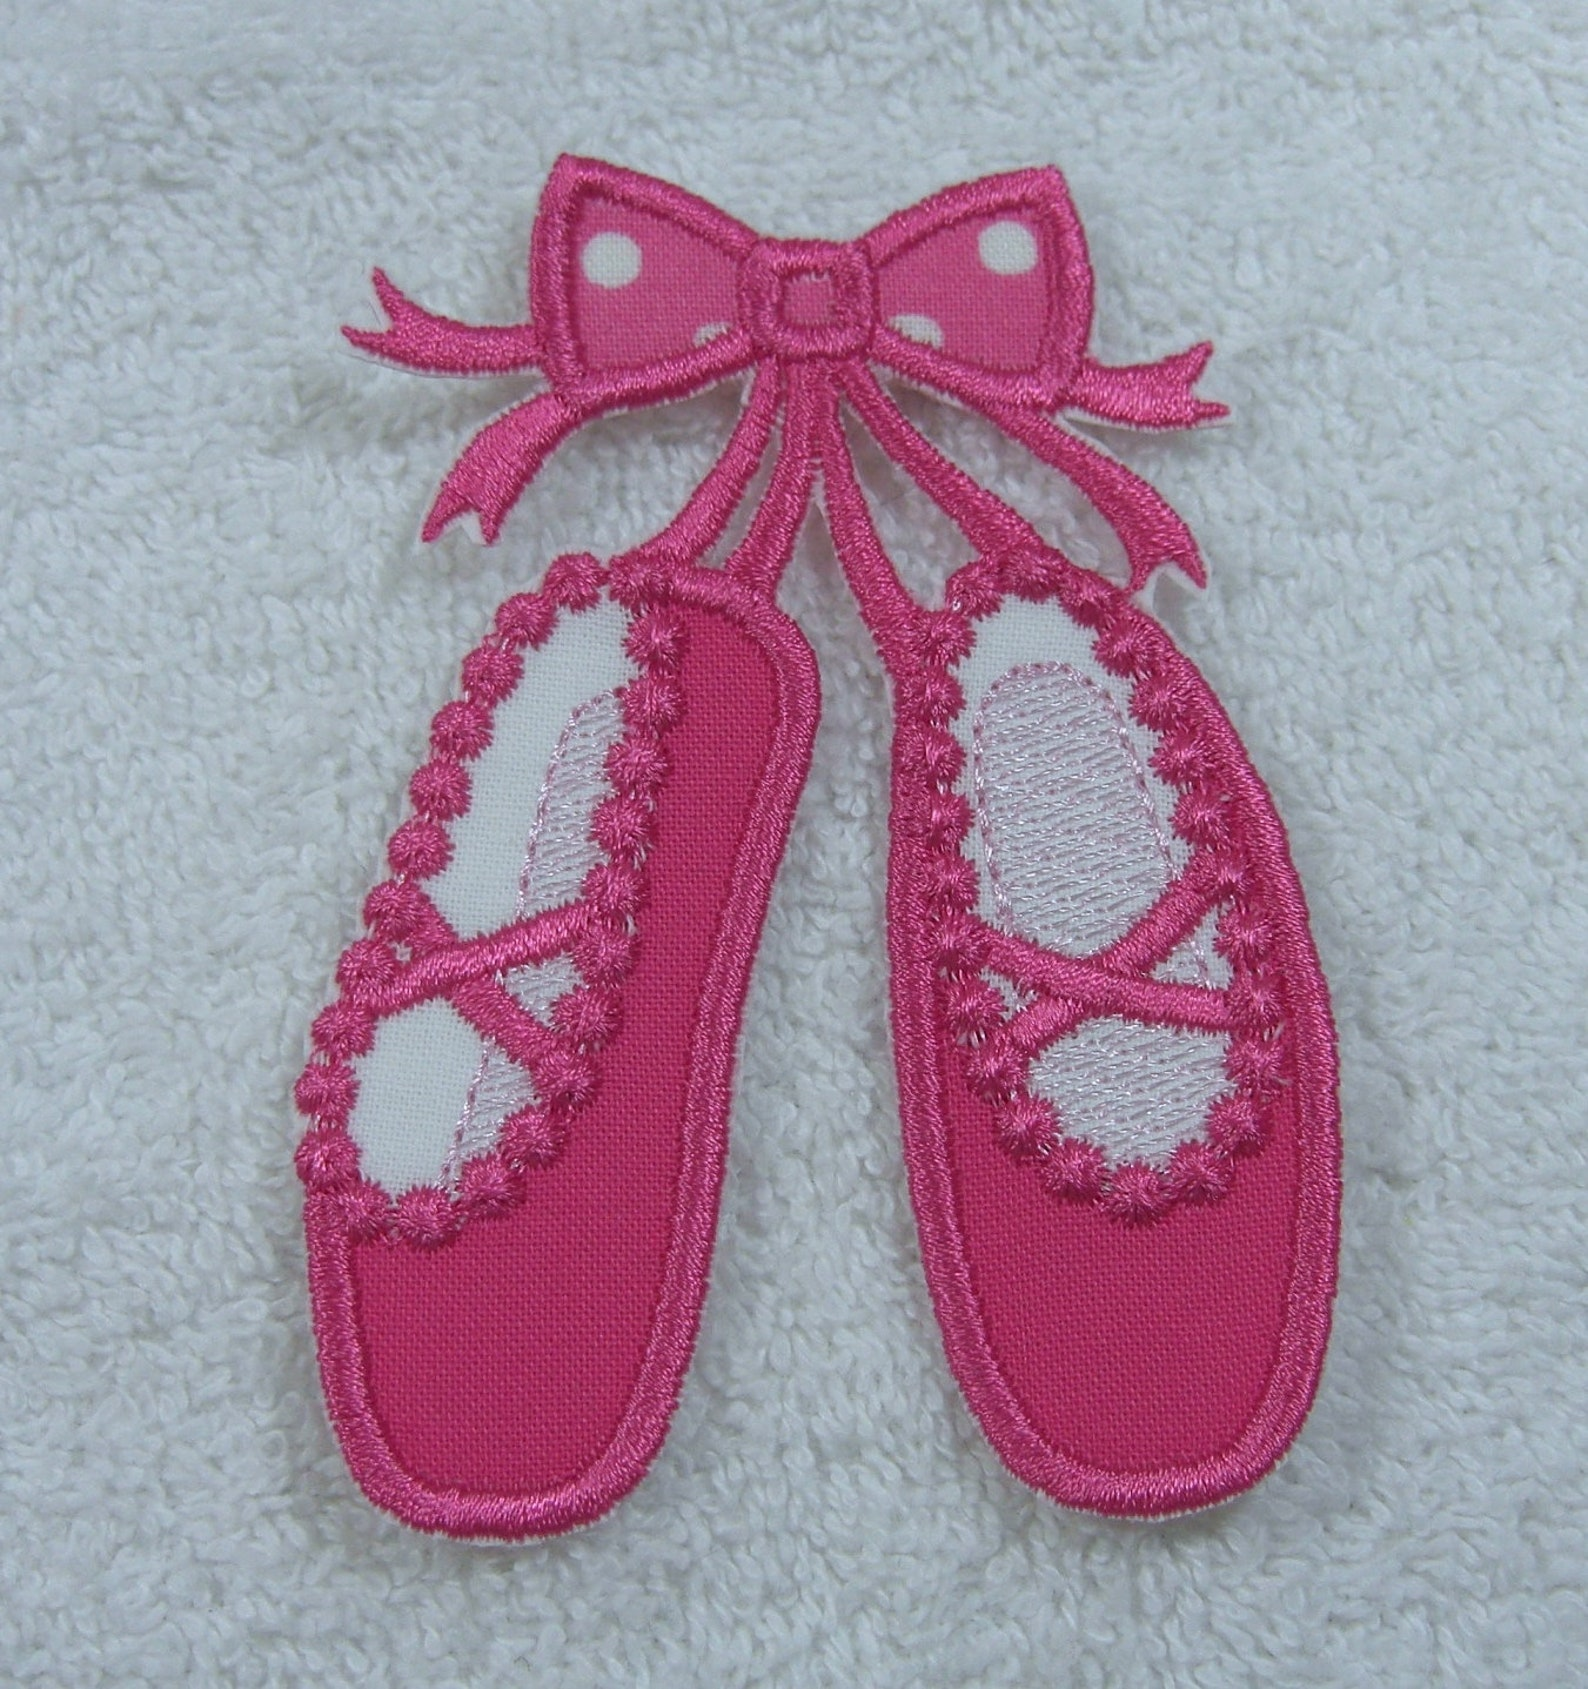 pink ballerina ballet slippers applique fabric embroidered iron on applique patch ready to ship